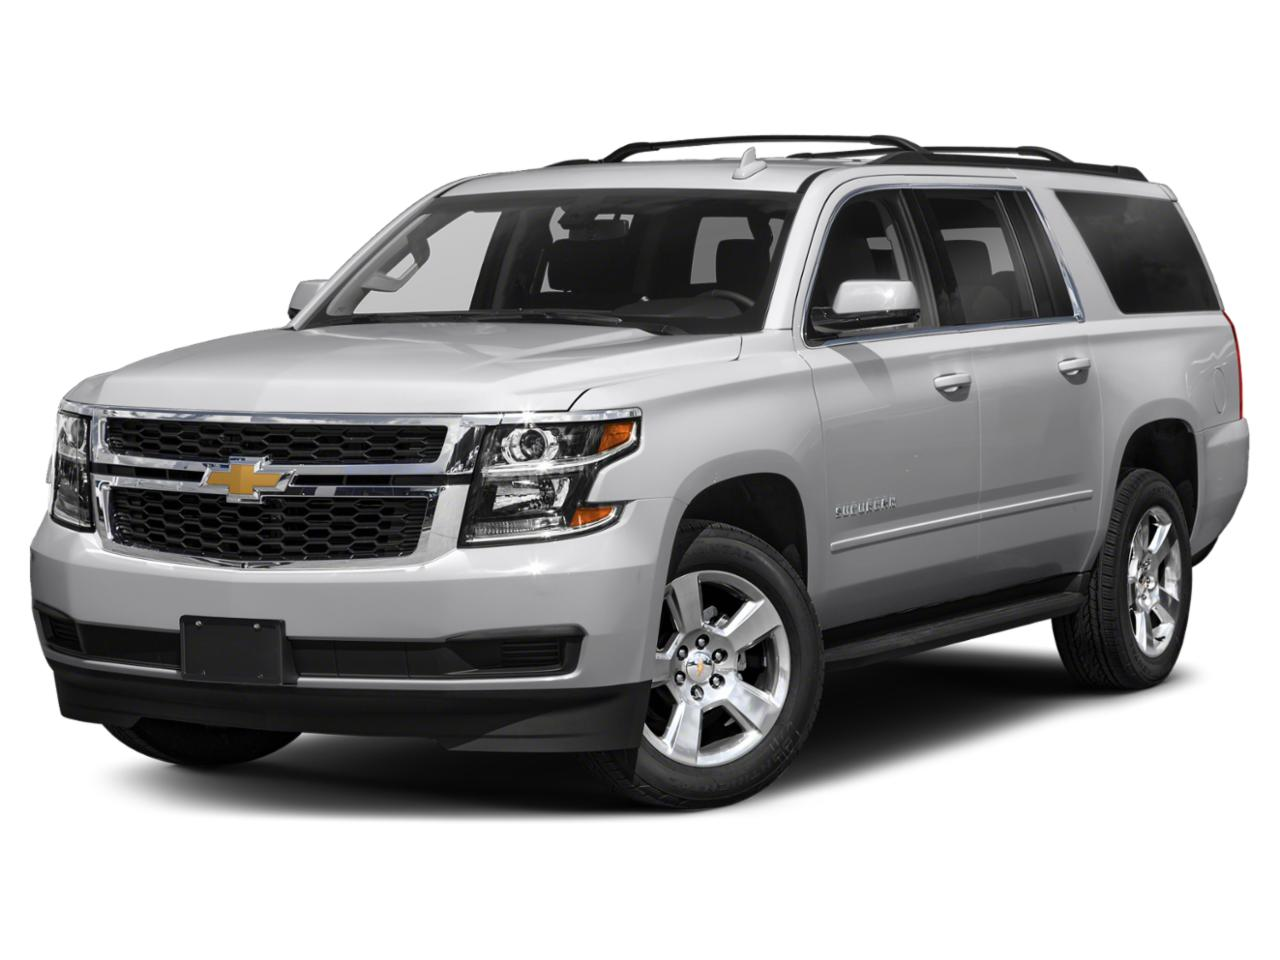 Silver Ice Metallic 2020 Chevrolet Suburban LS SUV Lexington NC